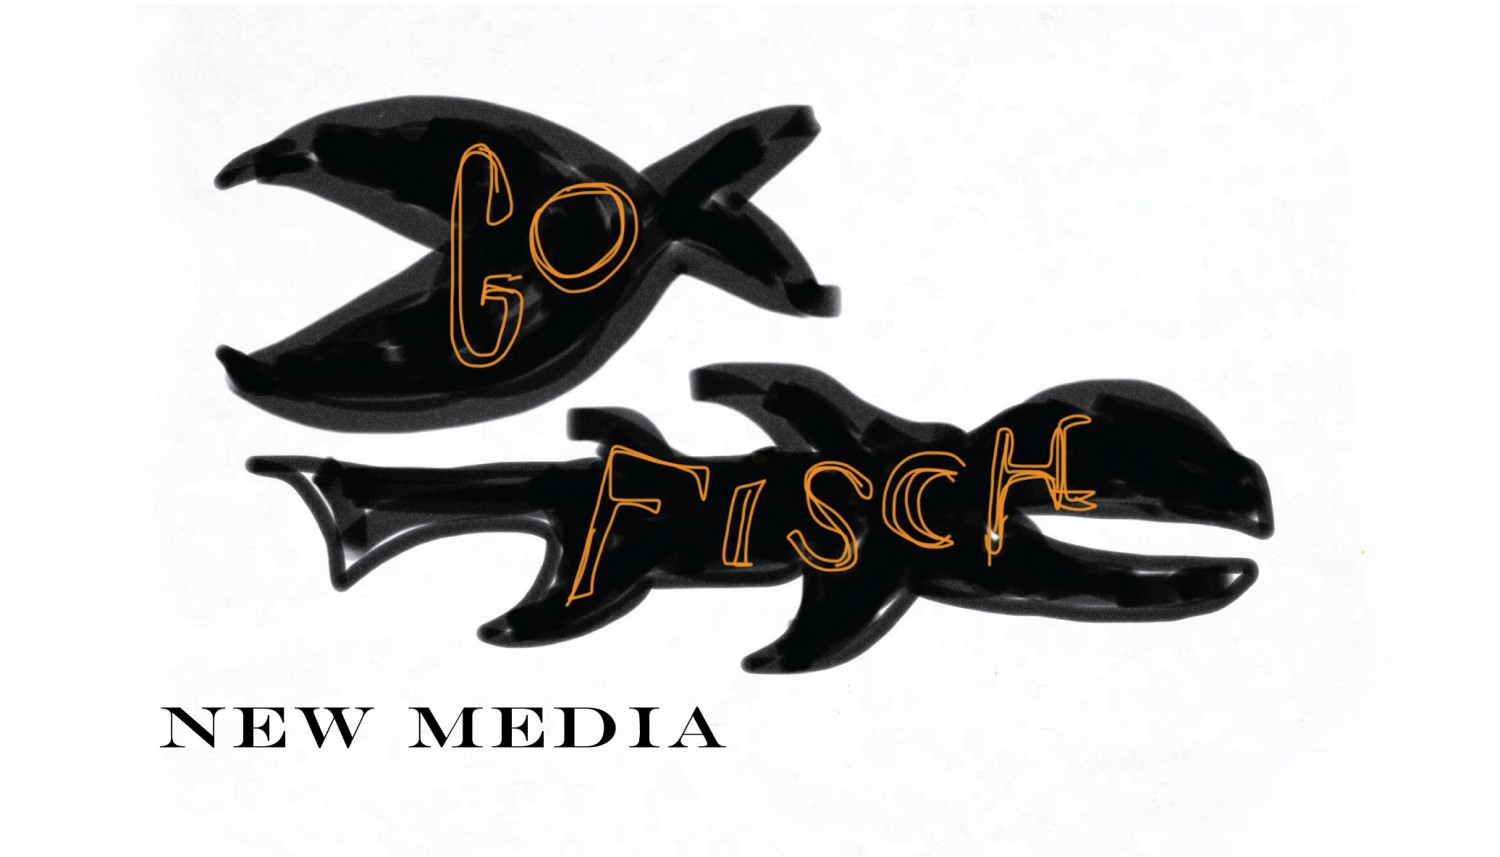 Go Fisch New Media